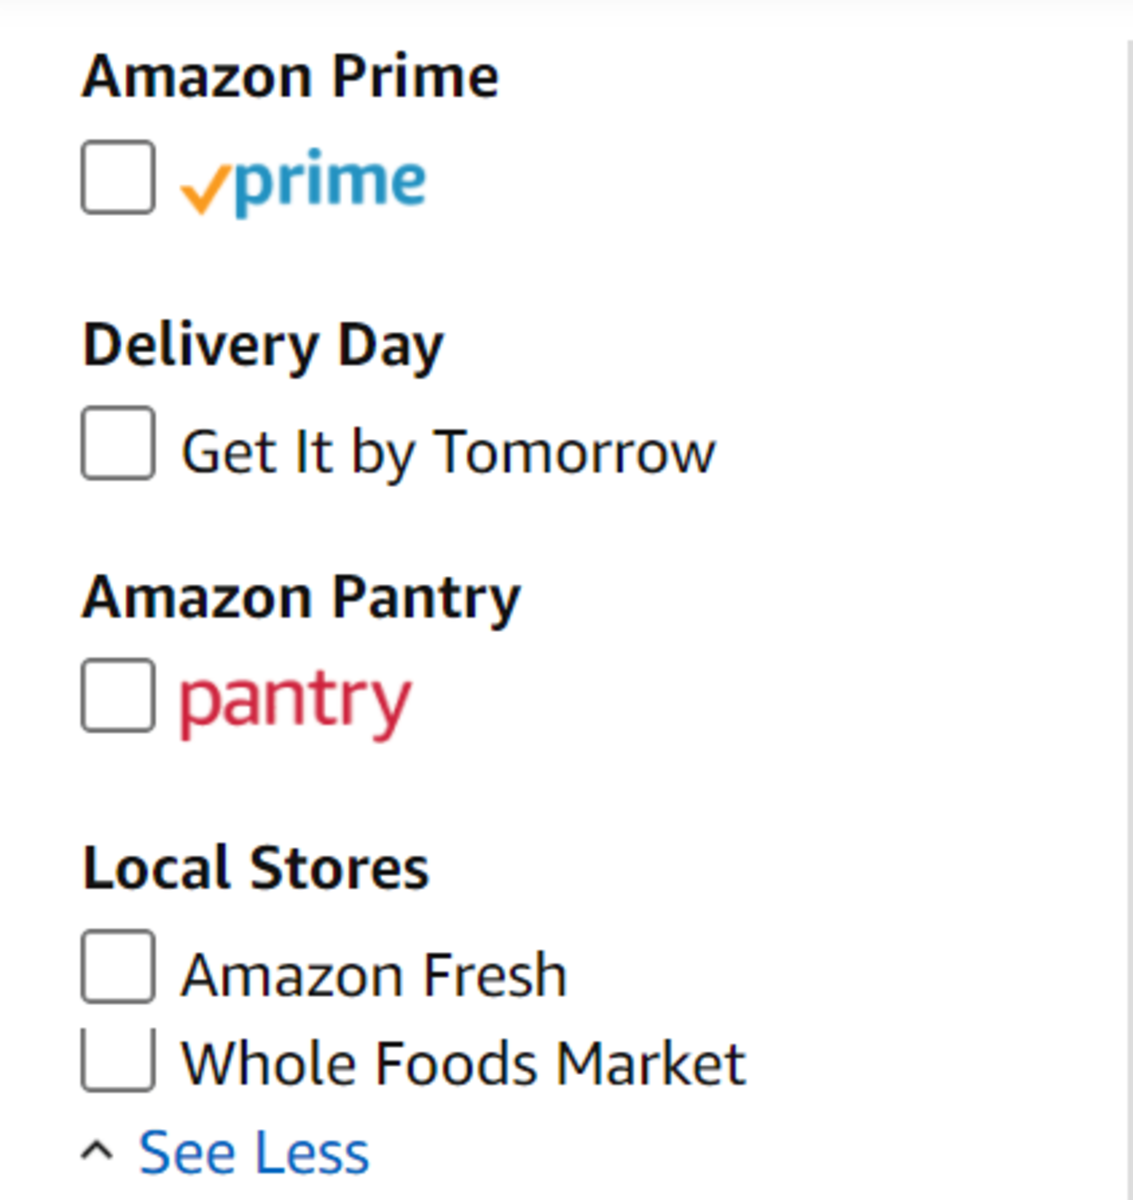 Checking the box next to Pantry, Fresh, or Whole Foods Market makes it easier to shop for items that quality for $35 free shipping